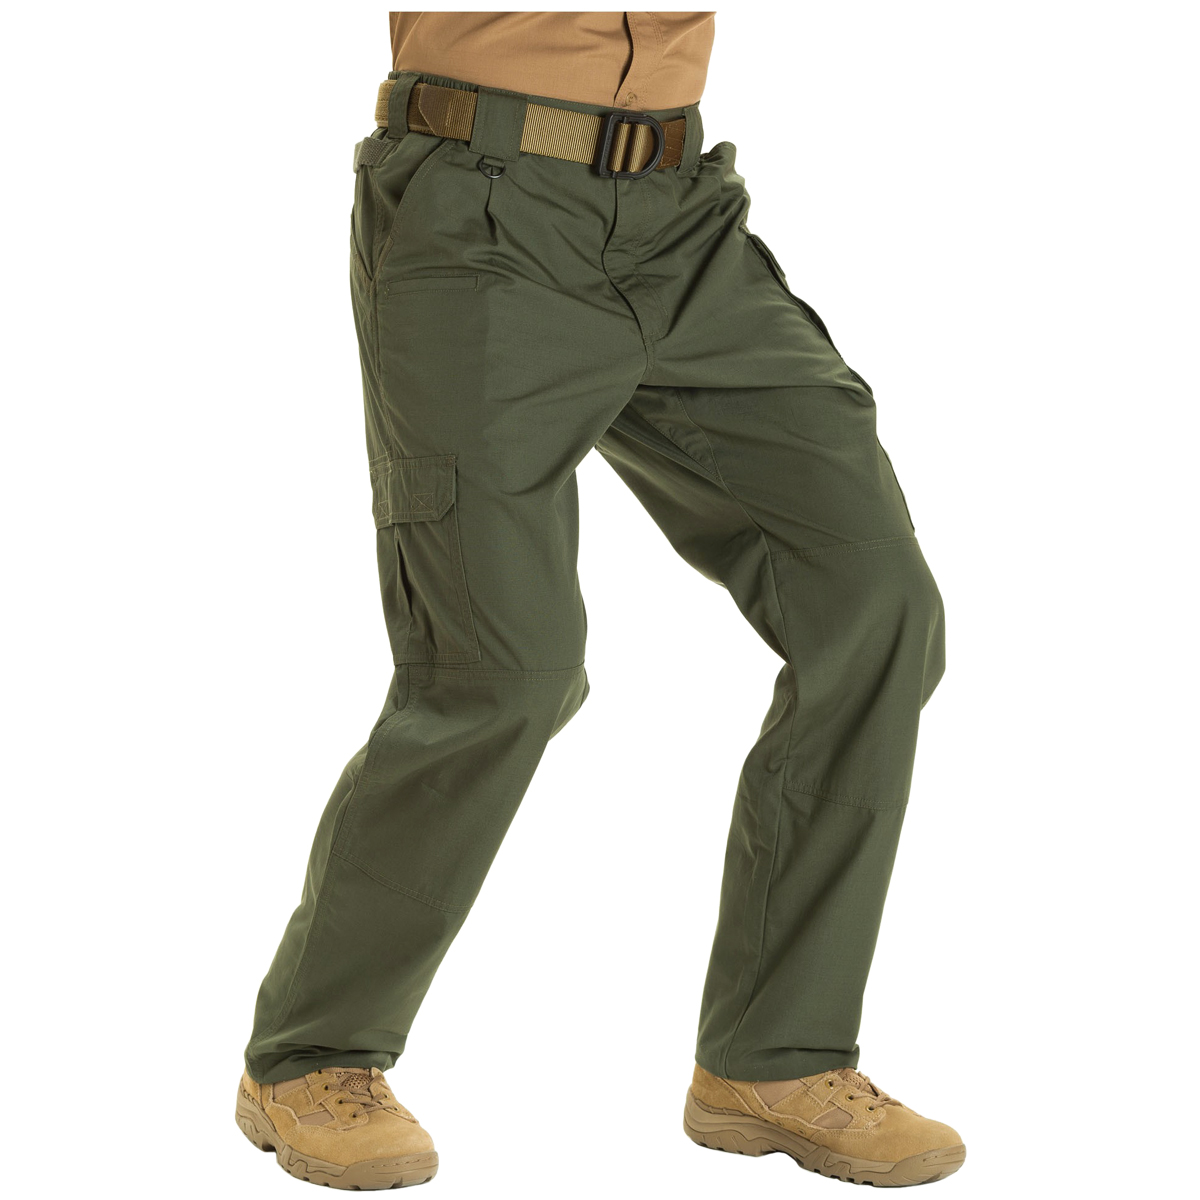 5.11 Taclite Pro Trousers Cargo Mens Pants Security Police Guard ...